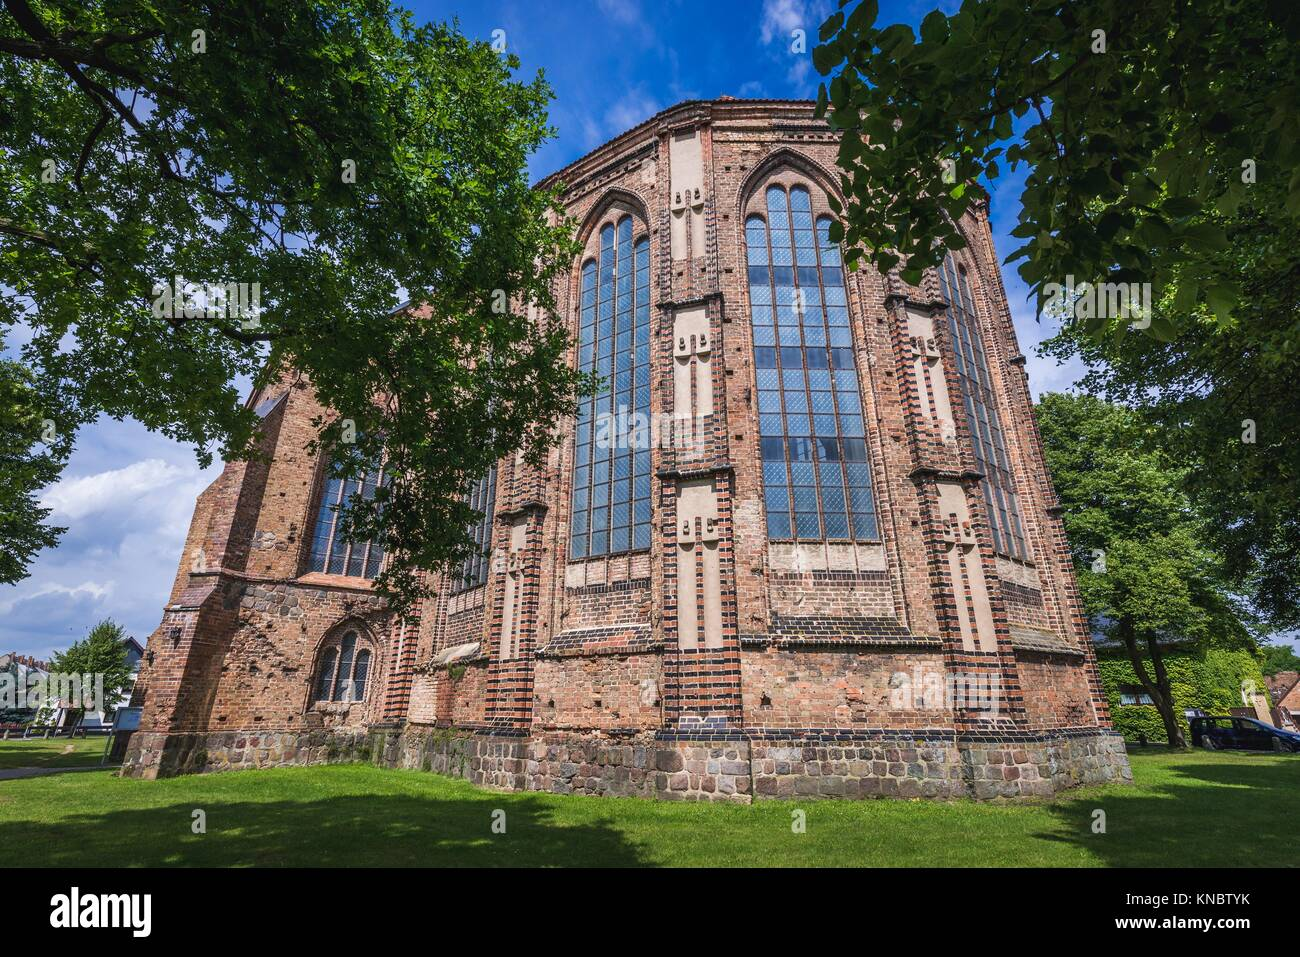 Exterior of Saint Stephen Church in Gartz town in the Uckermark district of Brandenburg federal state in Germany. - Stock Image